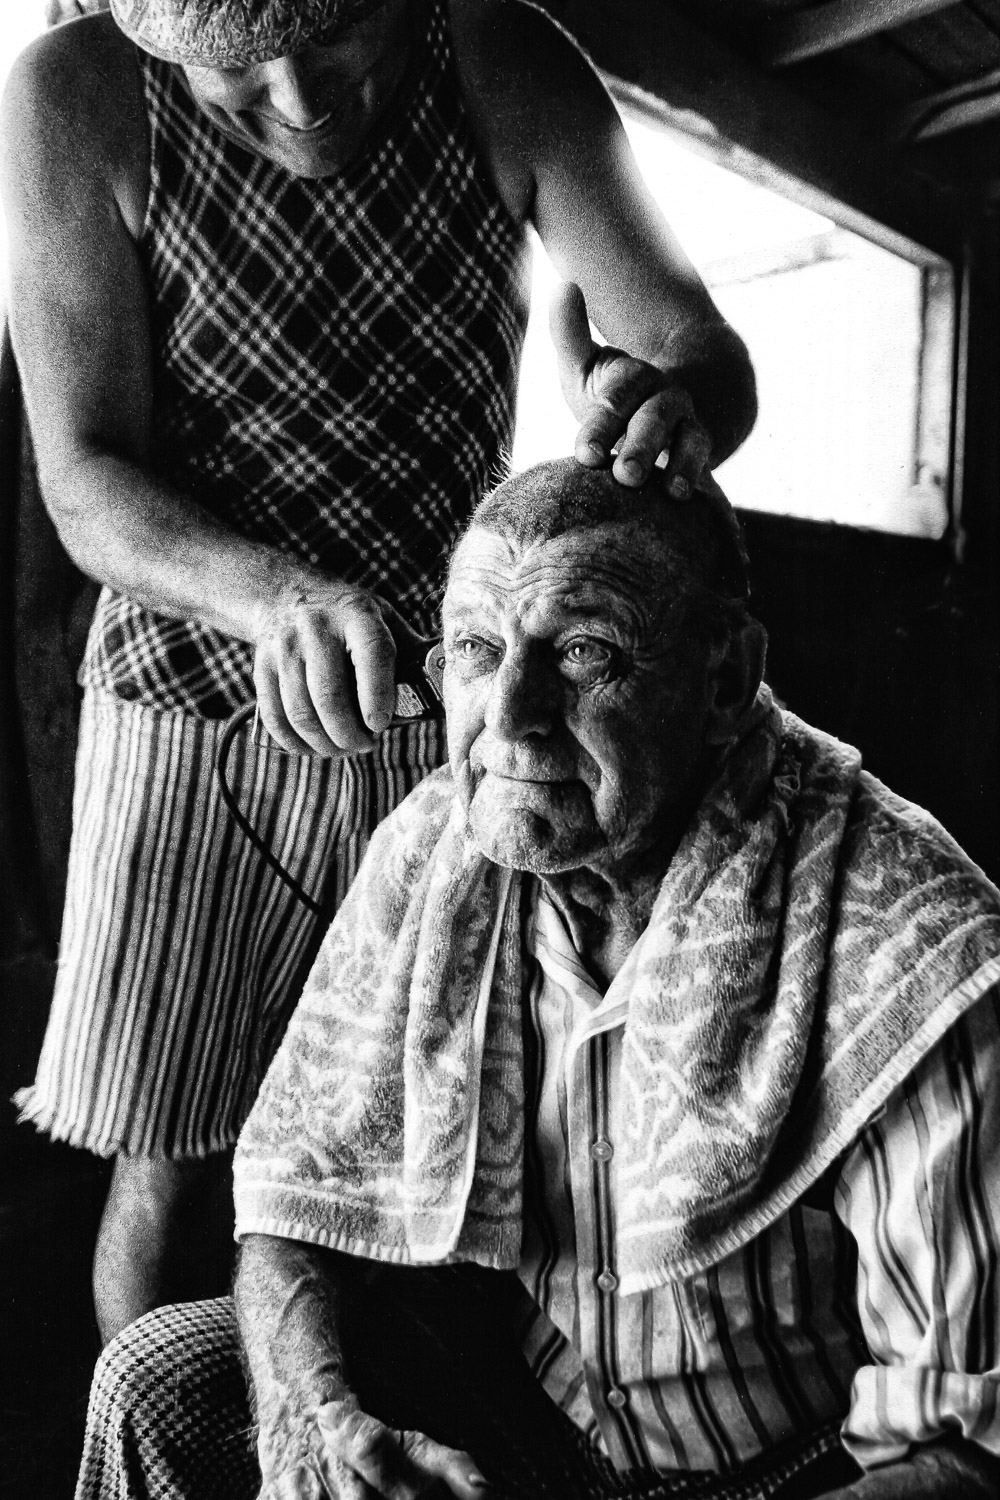 Old-Ranch-Hand-Gets-Buzz-Trim-Haircut-BW.jpg